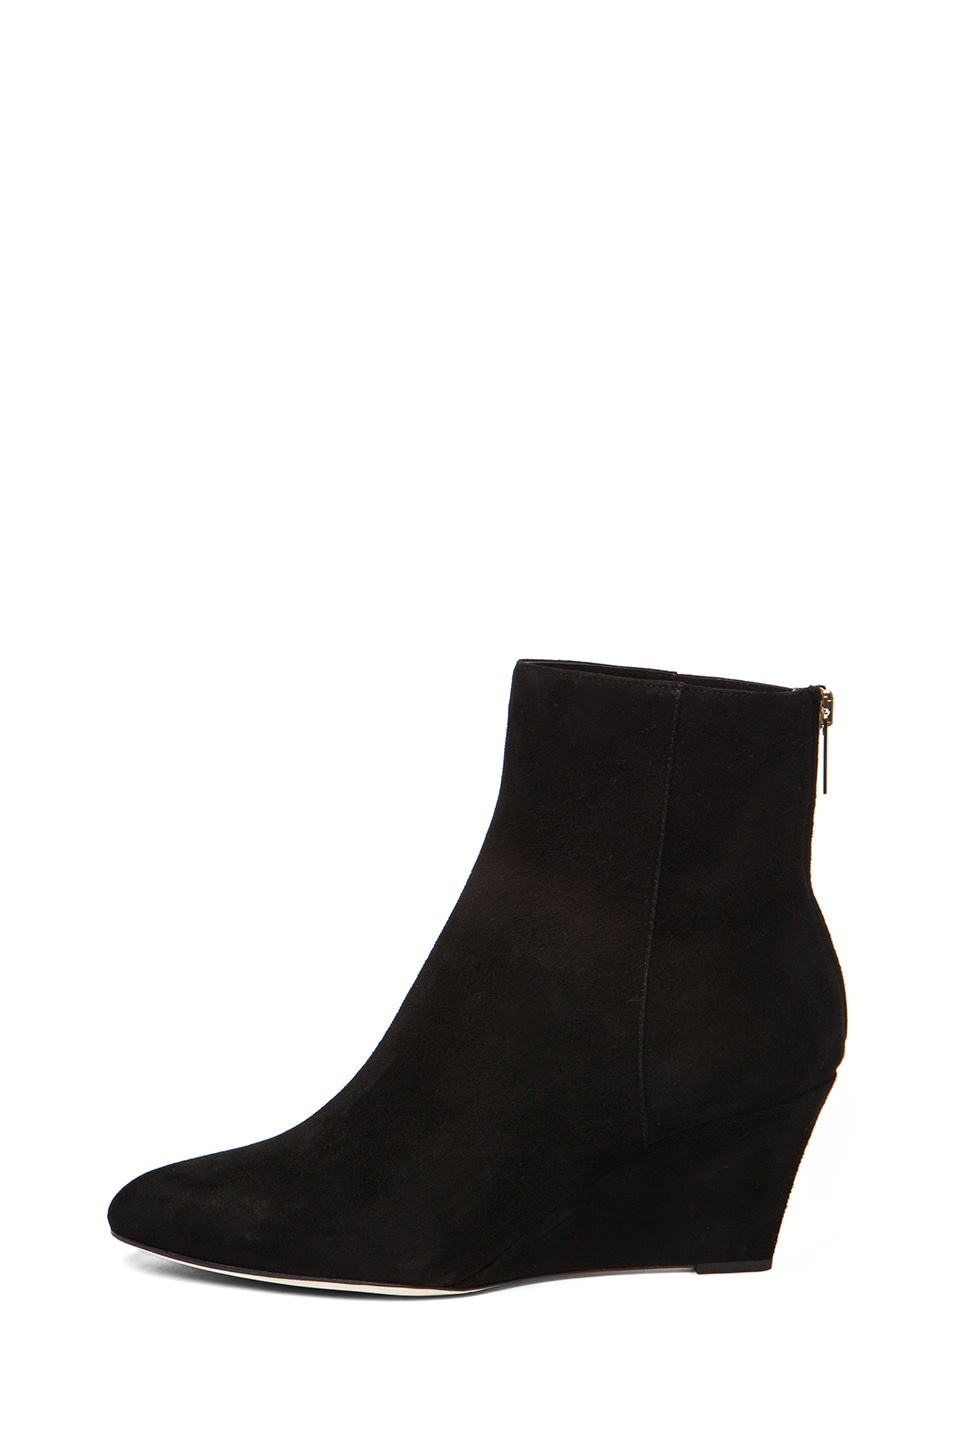 Image 1 of Jimmy Choo Mermaid Suede Wedge Ankle Boots in Black